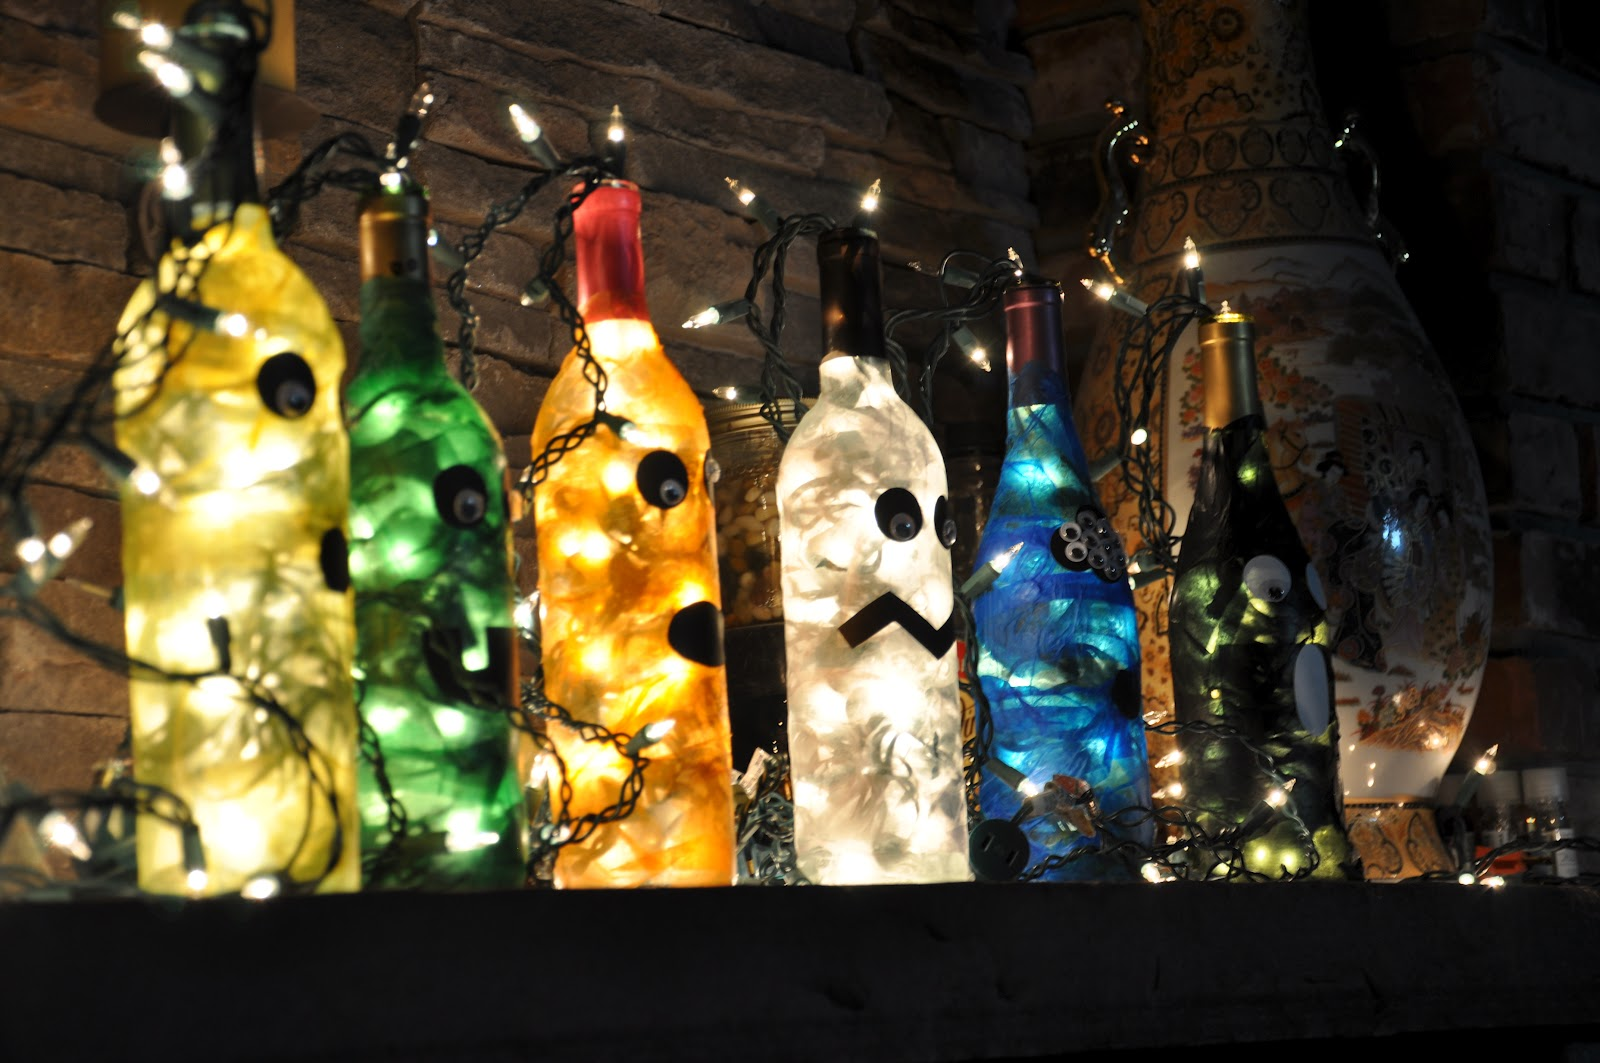 diy up cycled wine bottles to halloween decorations - Lighted Halloween Decorations